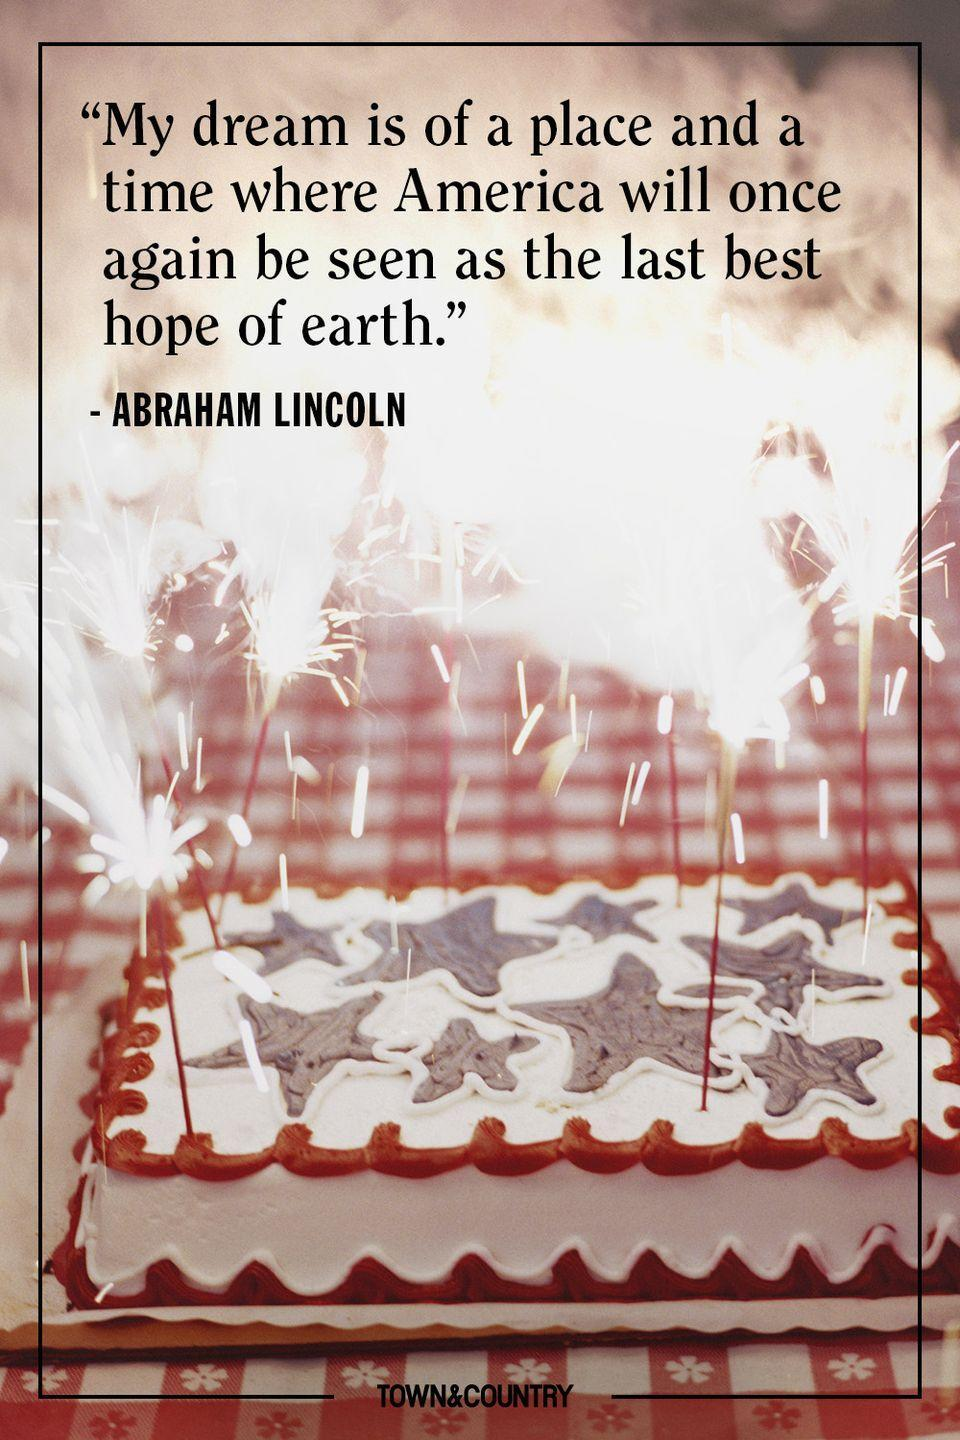 """<p>""""My dream is of a place and a time where America will once again be seen as the last best hope of earth.""""</p><p><em>— Abraham Lincoln</em></p>"""